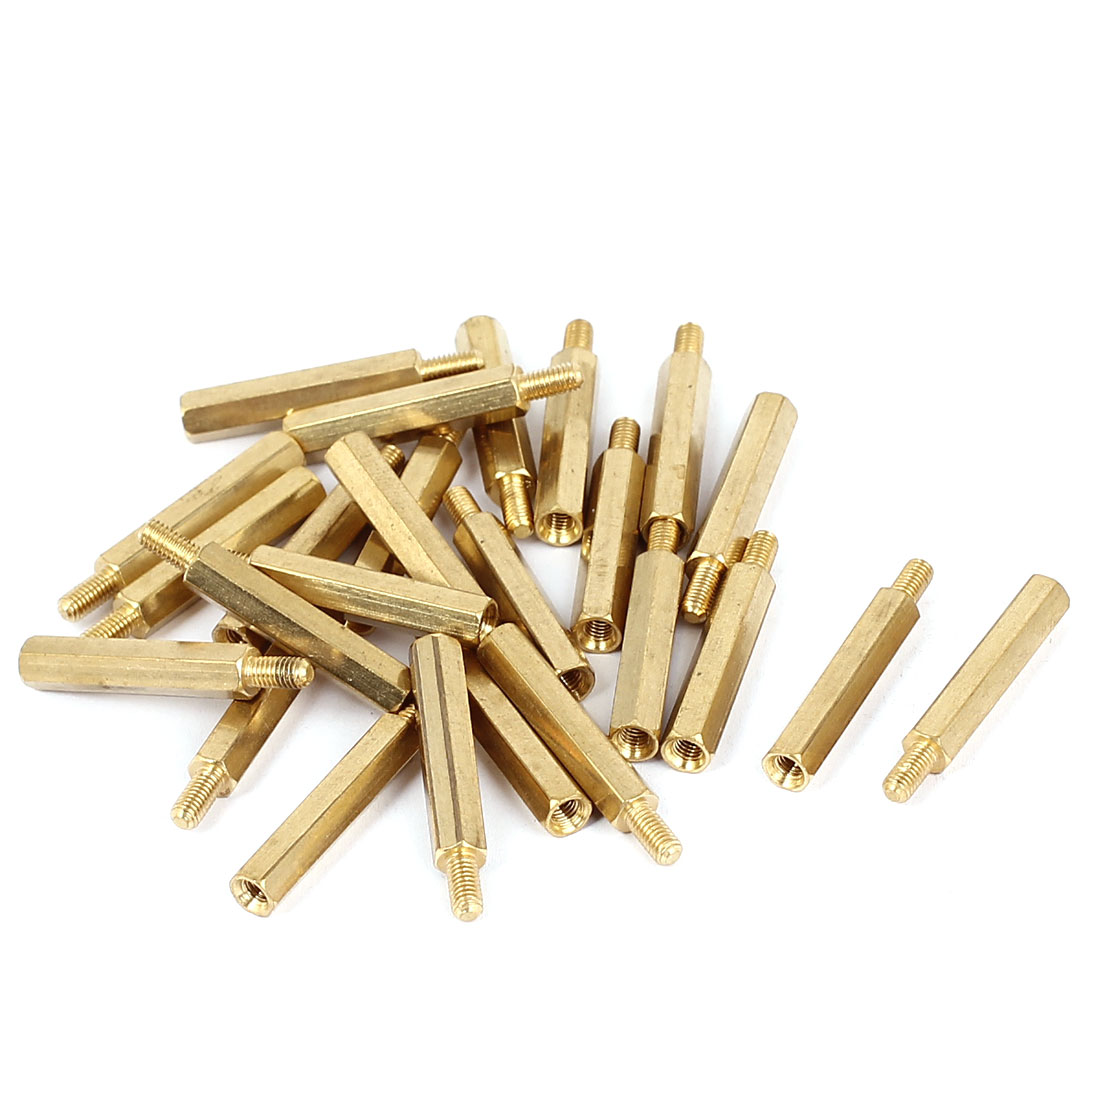 M3x24+6mm Female/Male Thread Brass Hex Standoff Pillar Spacer Coupler Nut 25pcs